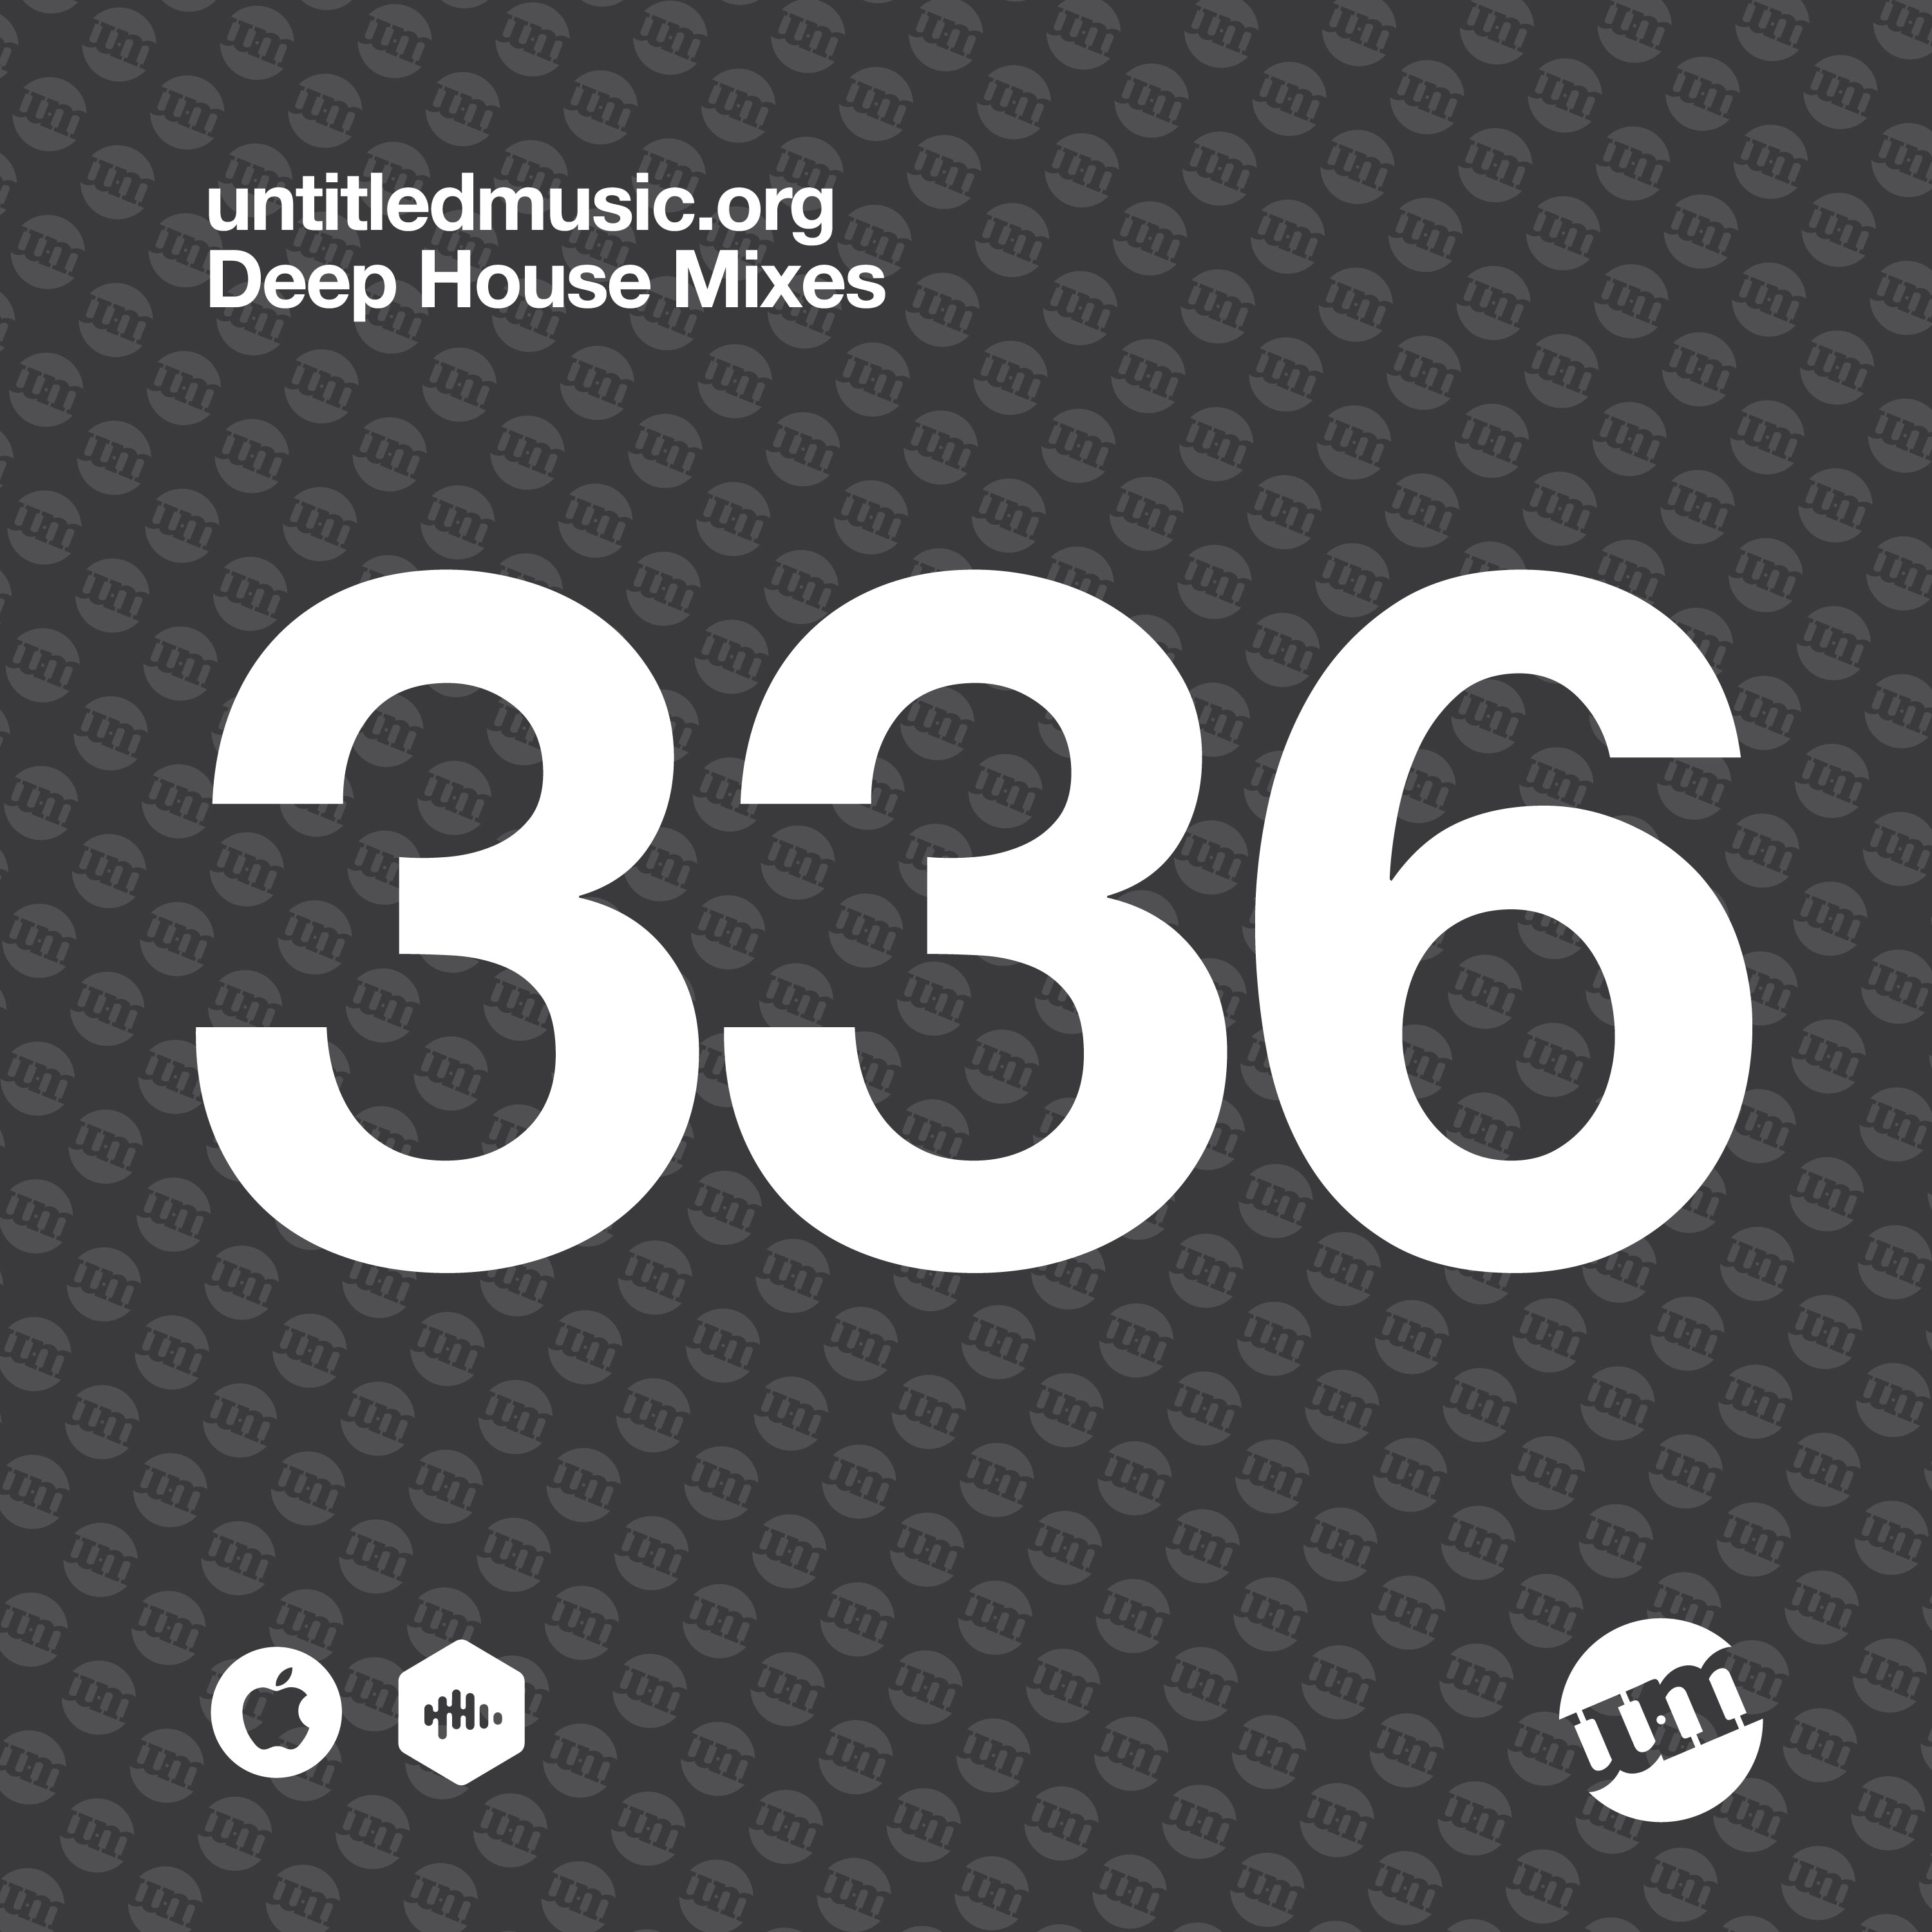 UM336 - Deep House Mix (22.06.20)